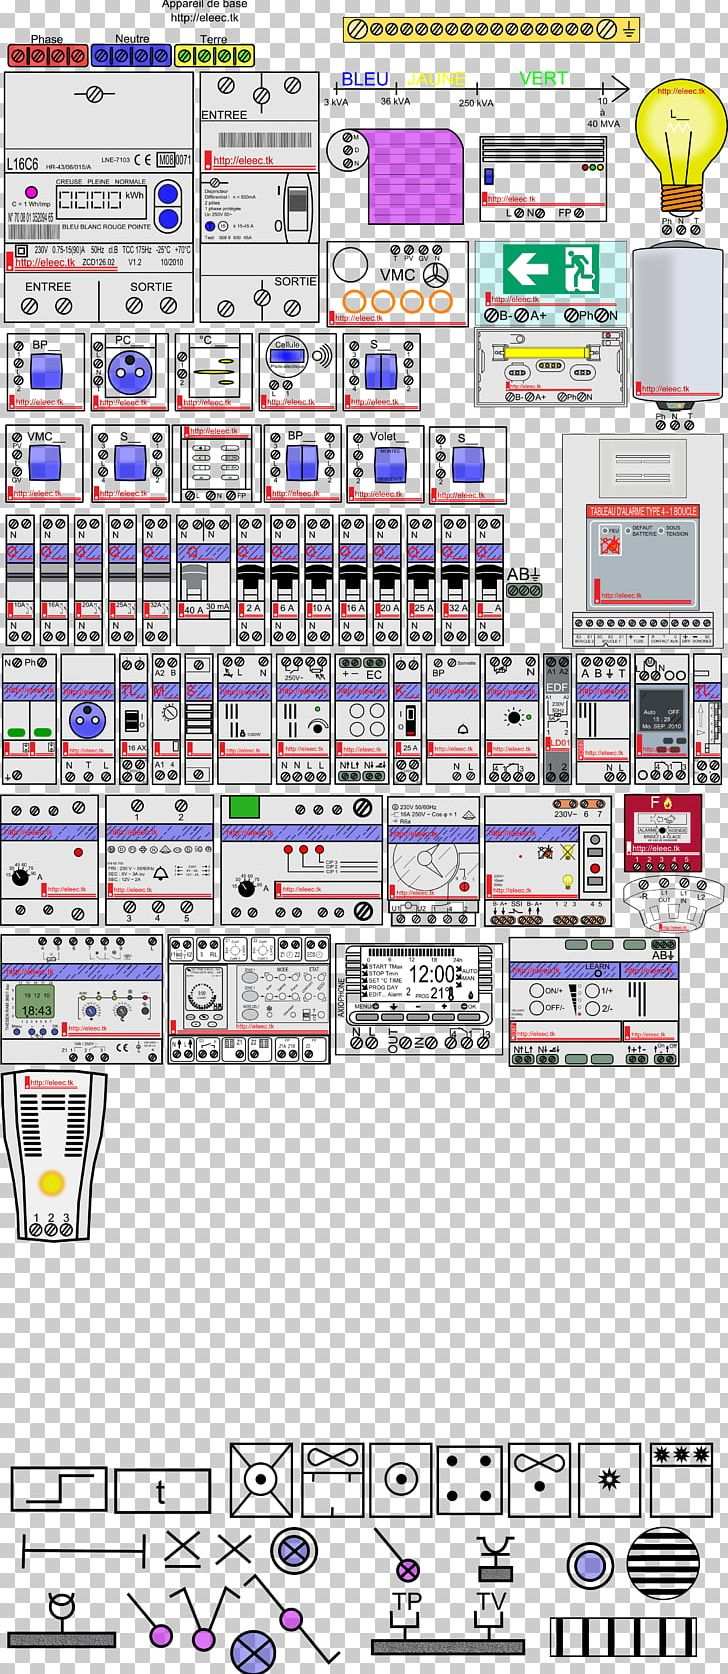 Wiring Diagram Electric Meter